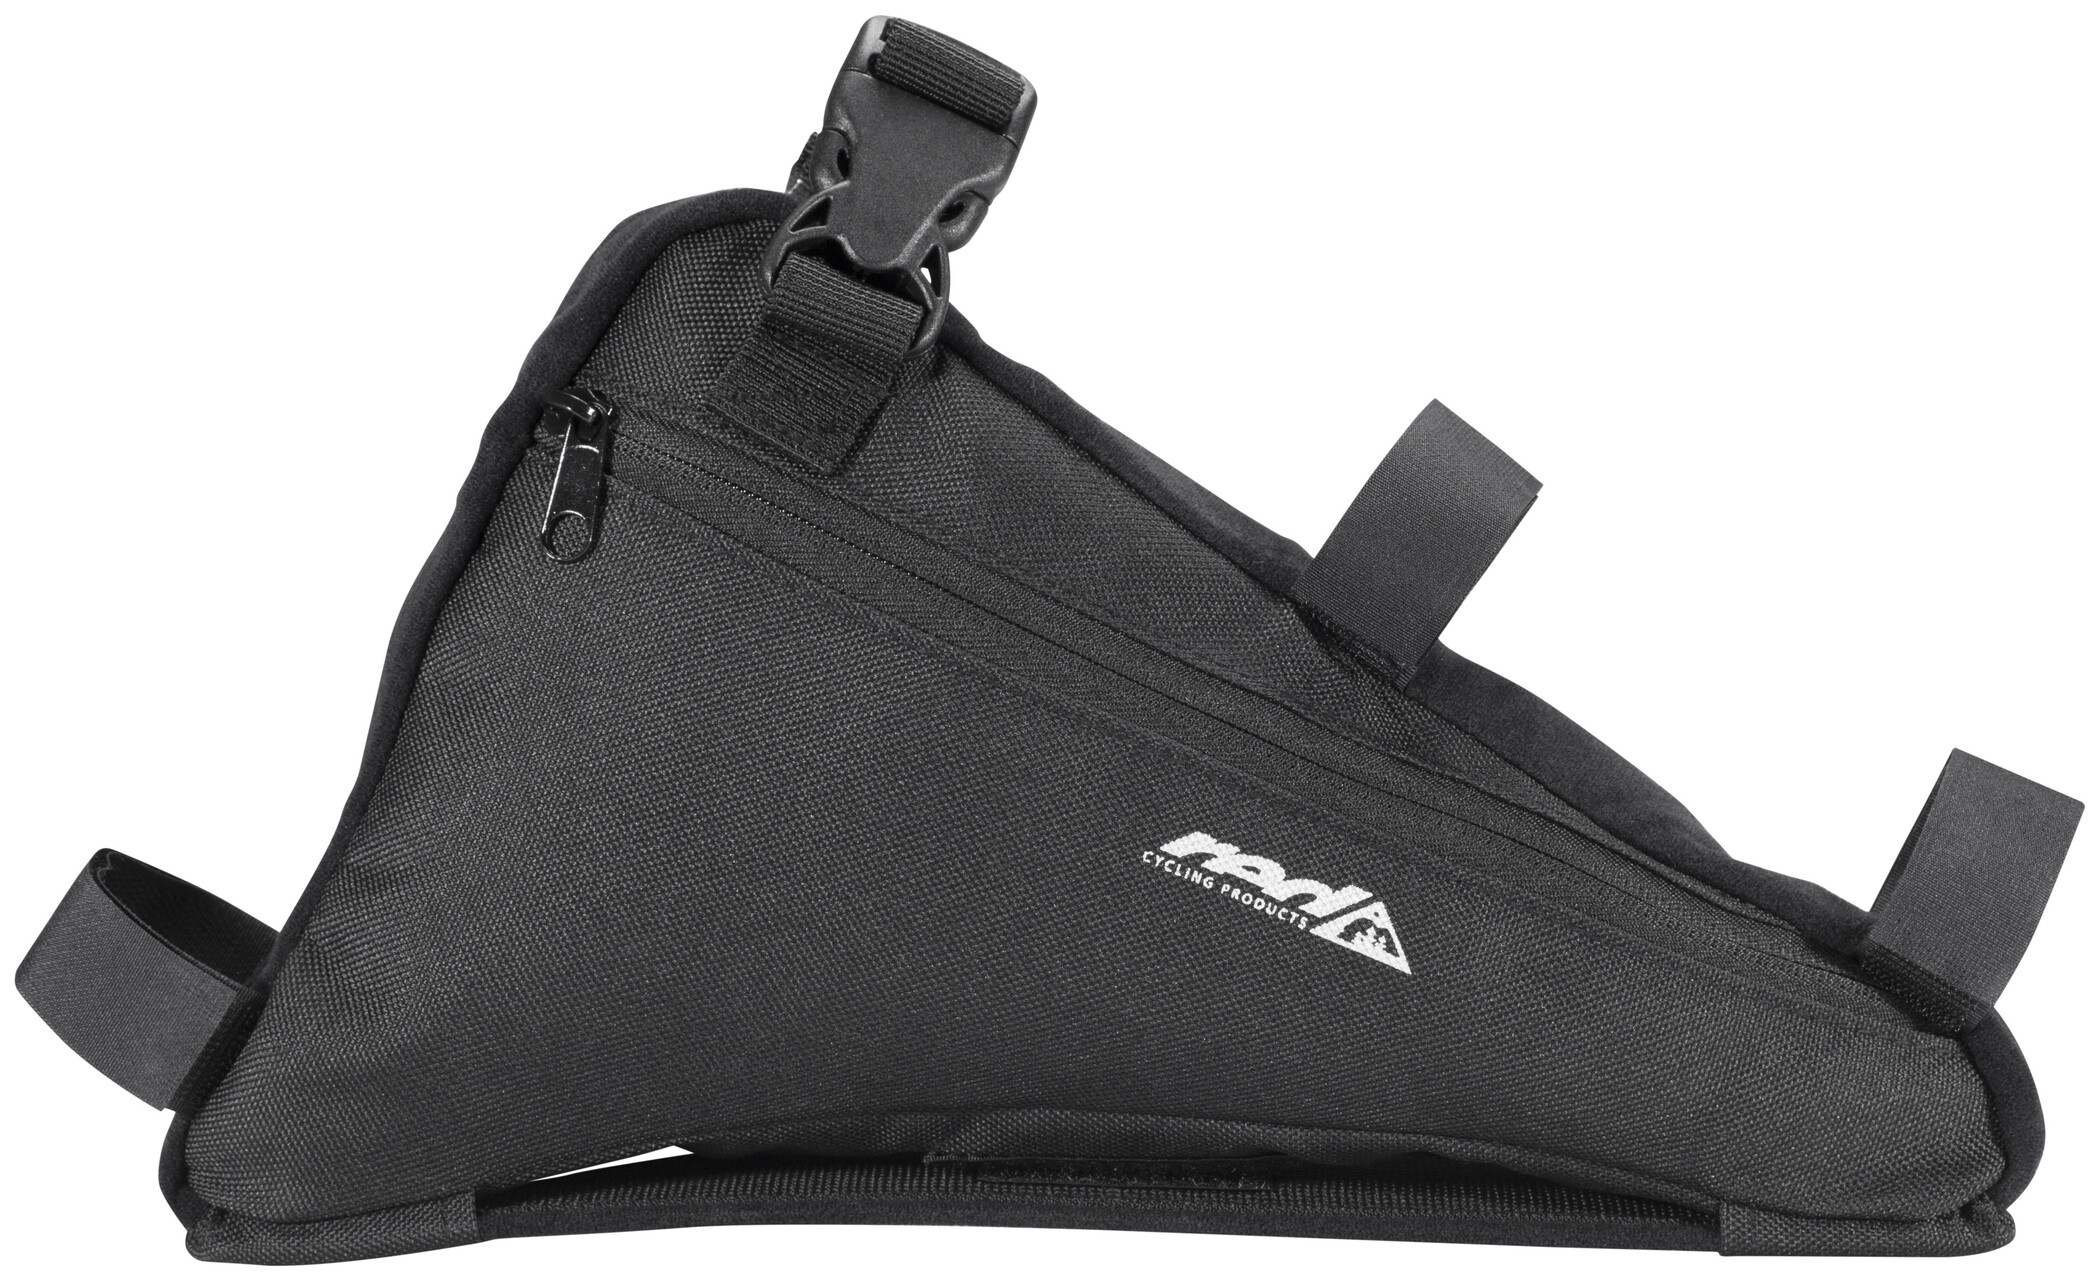 Red Cycling Products Frame Bag One, black (2019) | Frame bags